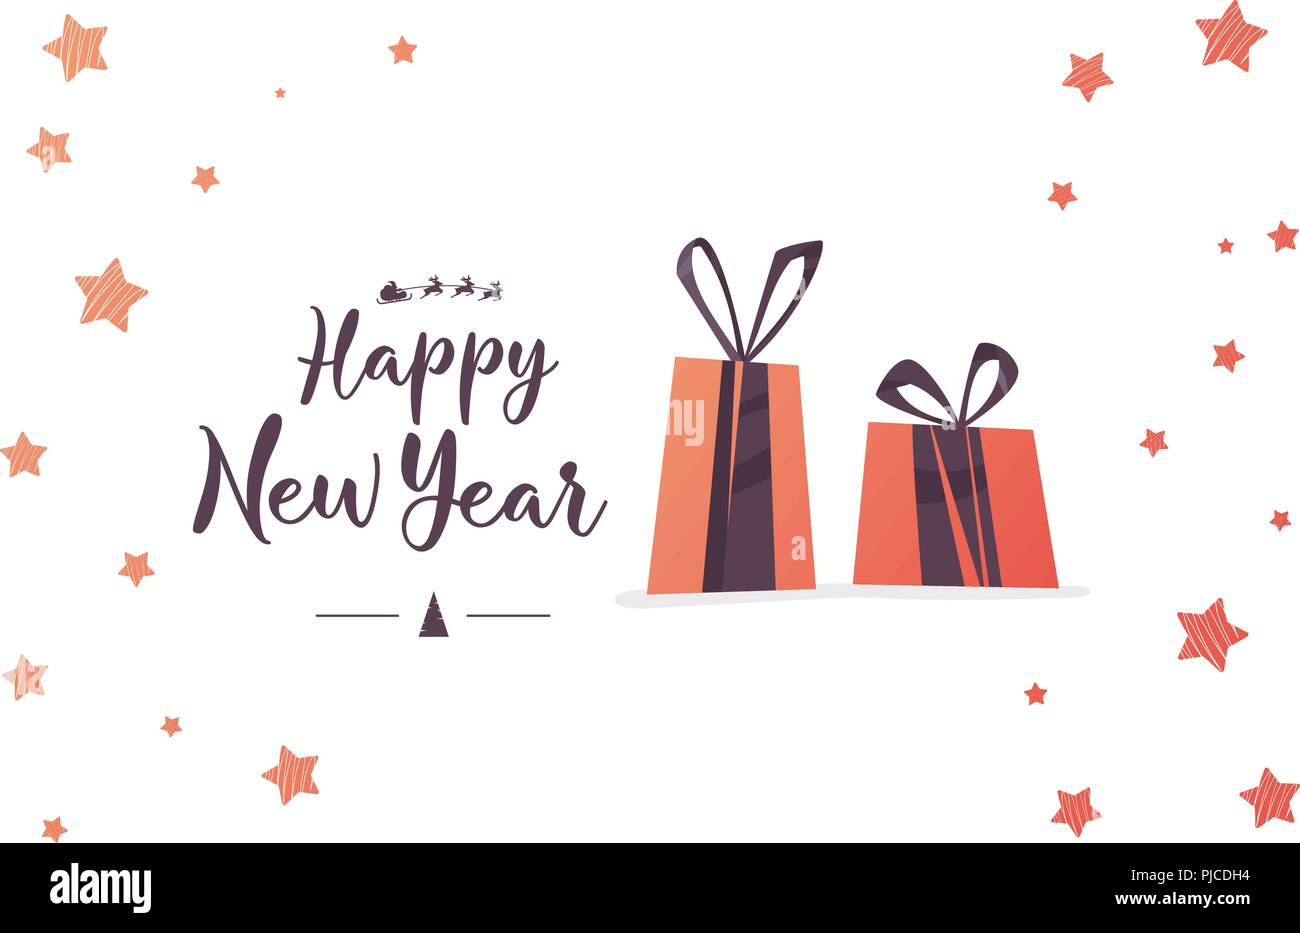 creative happy new year 2018 greeting card design hand drawn inscription calligraphic design vector illustration